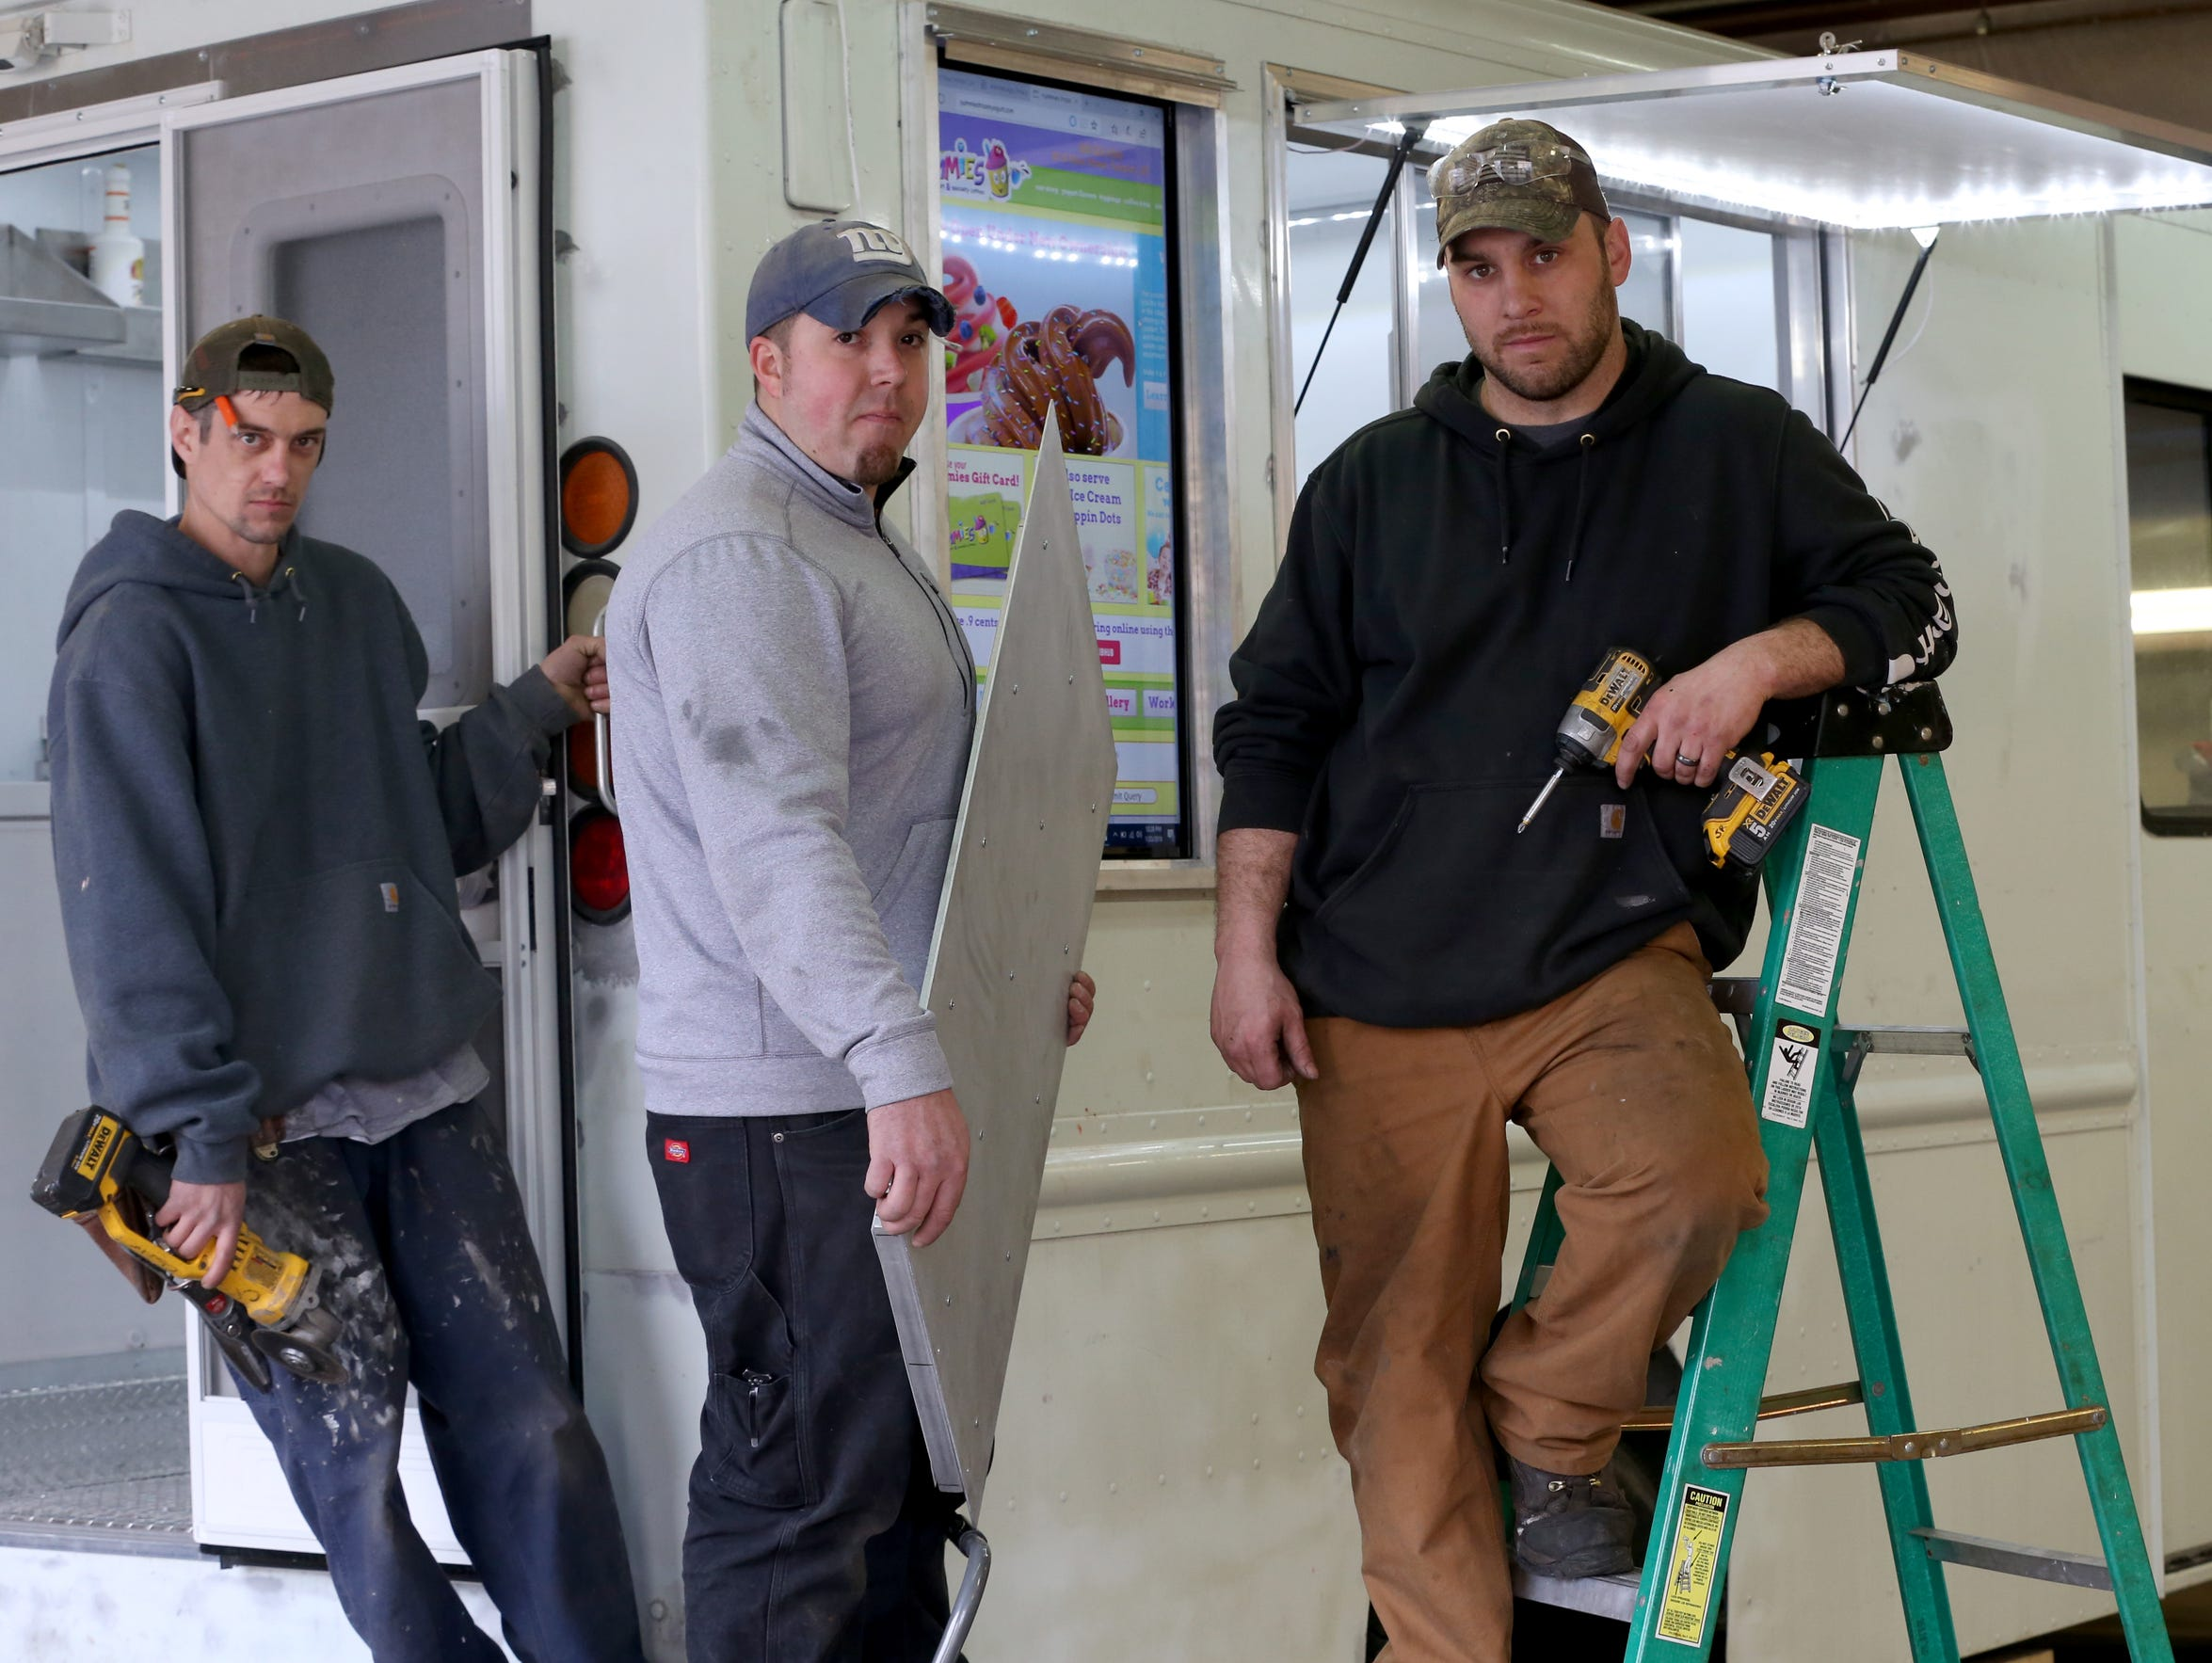 From left, Edward Knox, Josh Zwierlein and Charlie Lewis of Four Horse Customs. They are all former M Design employees.